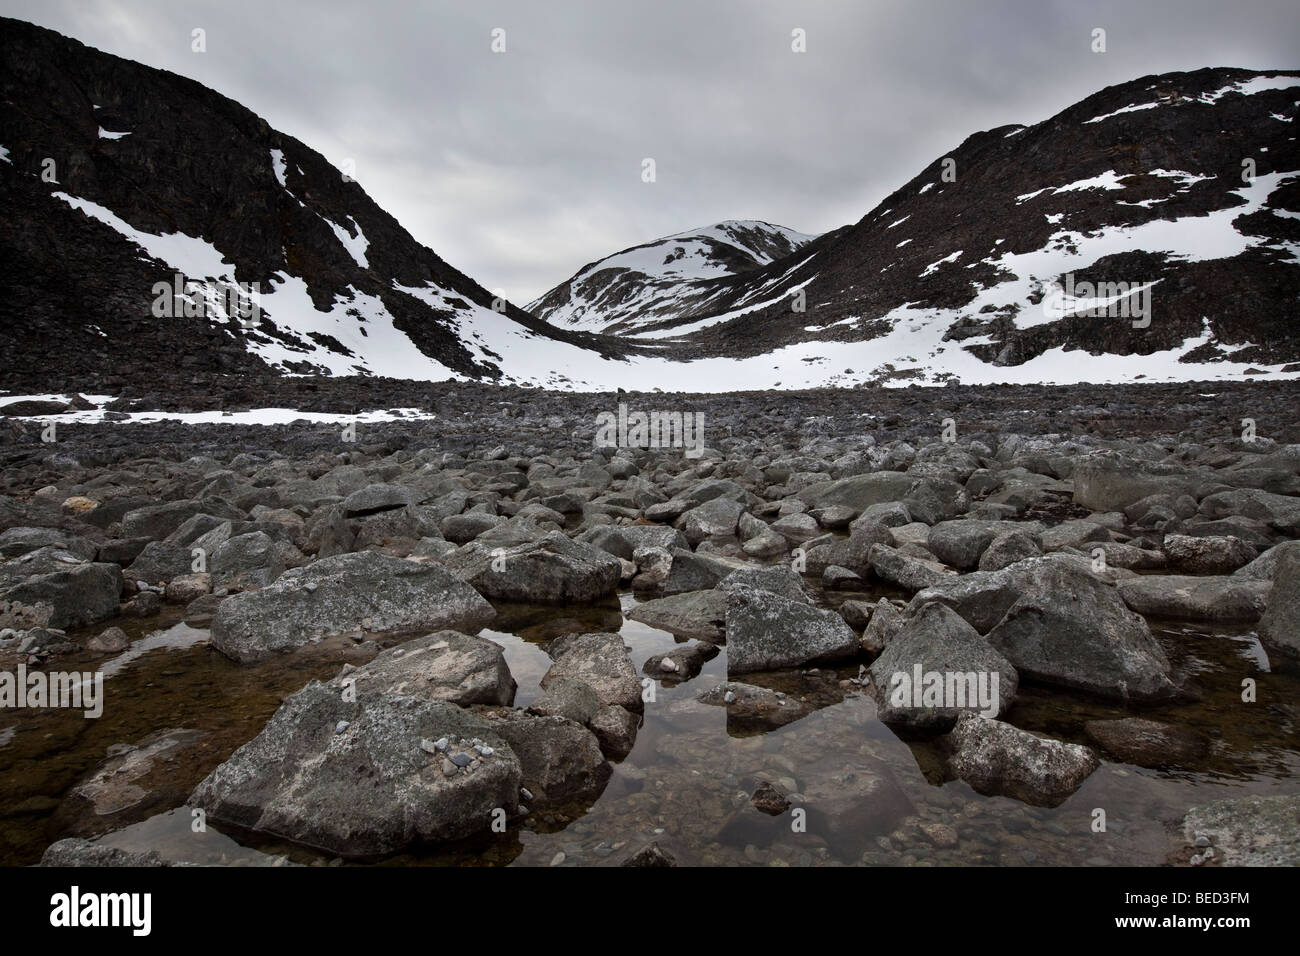 A rocky field at the mountain foot in Svalbard - Stock Image